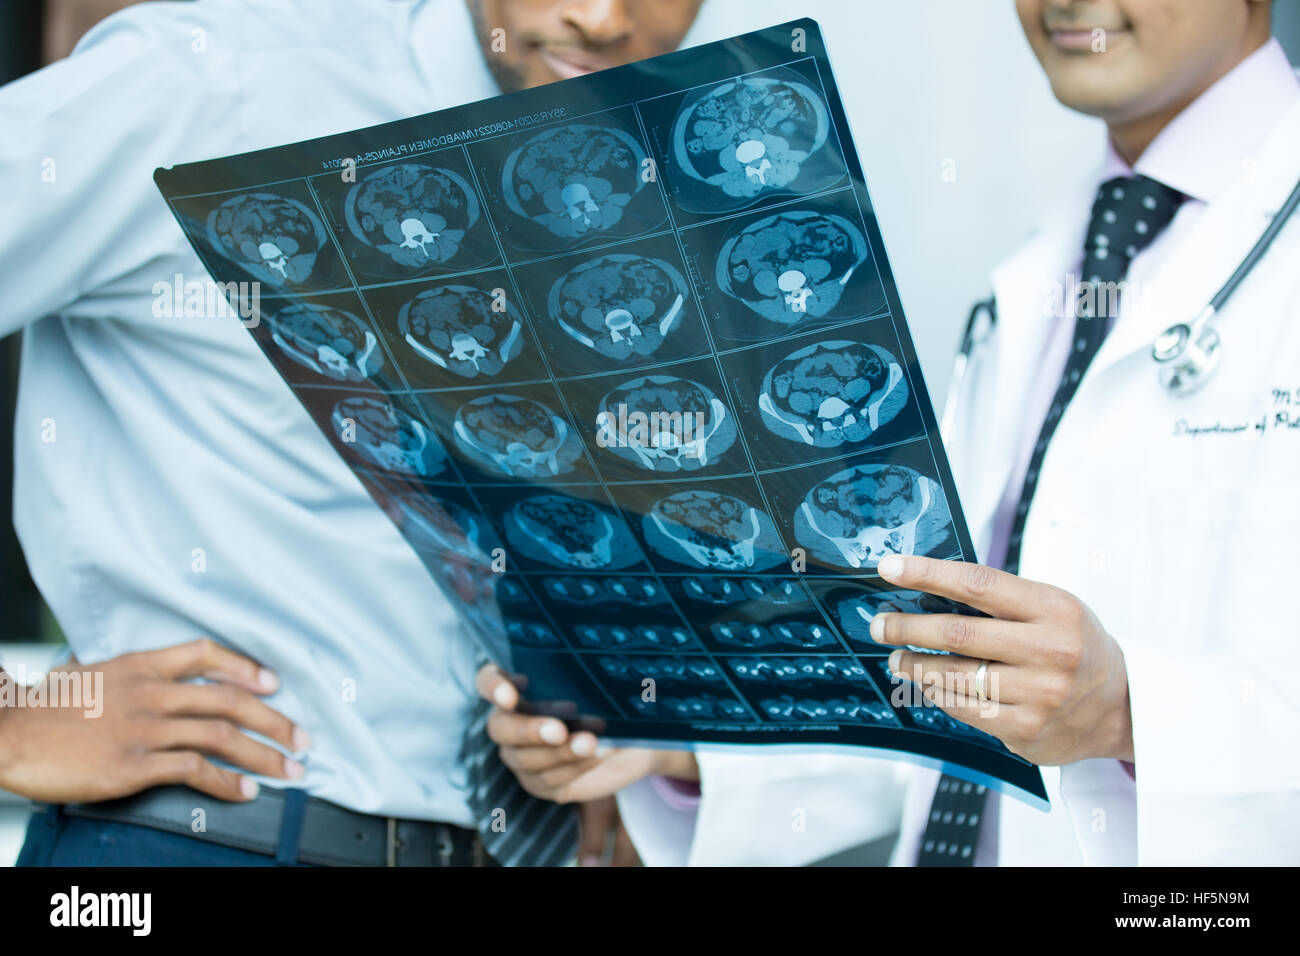 Closeup portrait of intellectual healthcare professionals with white labcoat, looking at full body x-ray radiographic - Stock Image